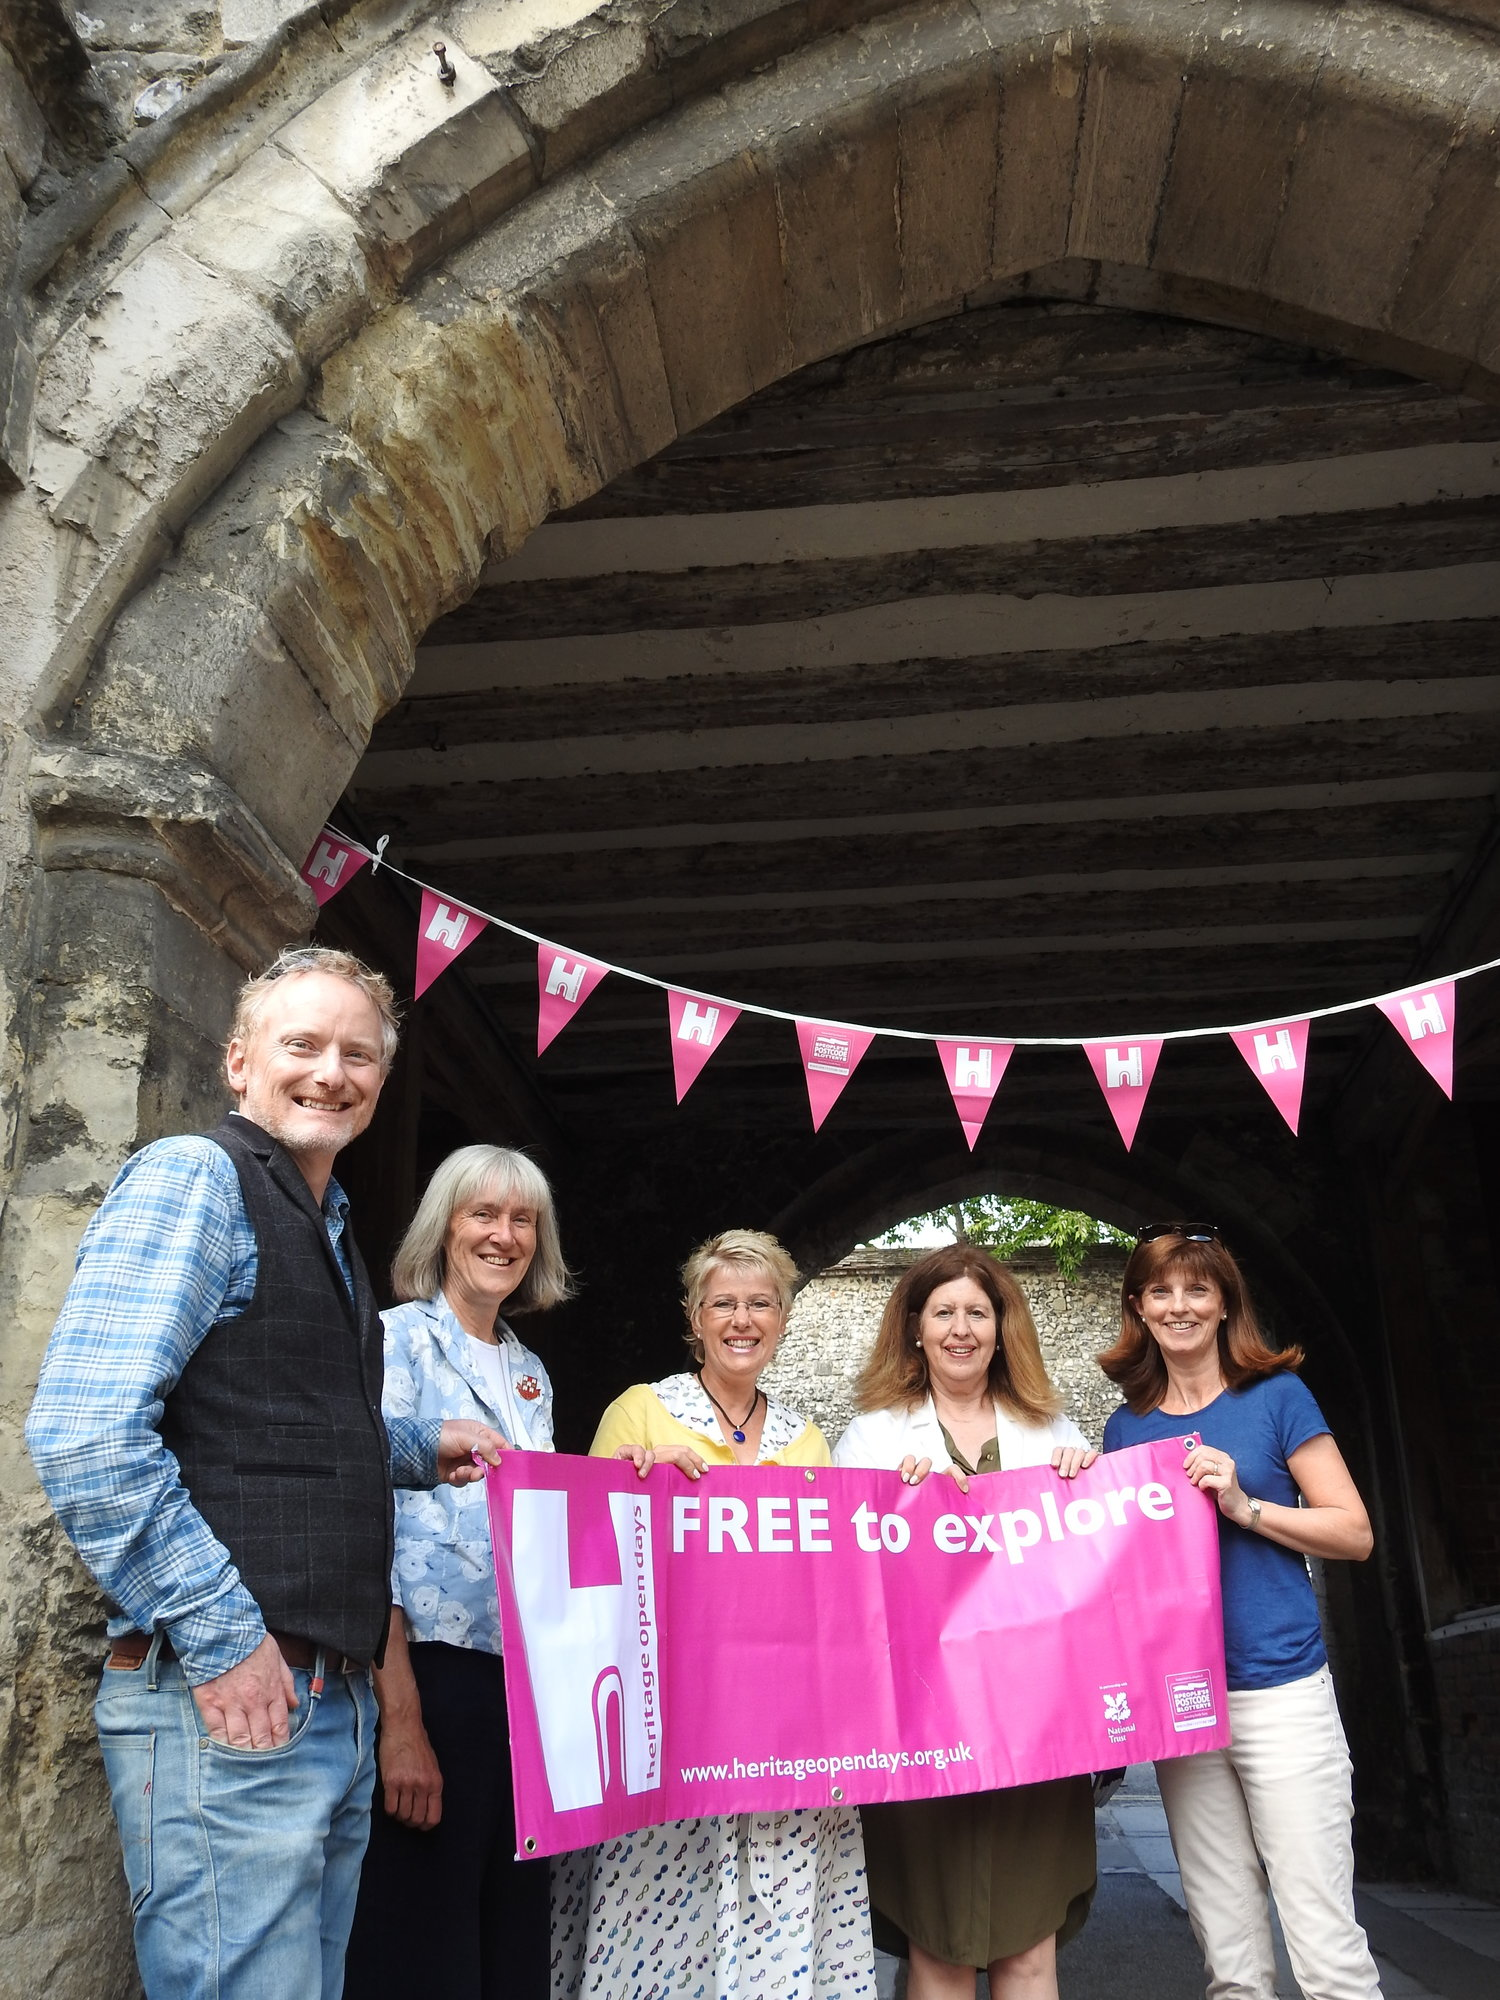 How Winchester Heritage Open Days was created